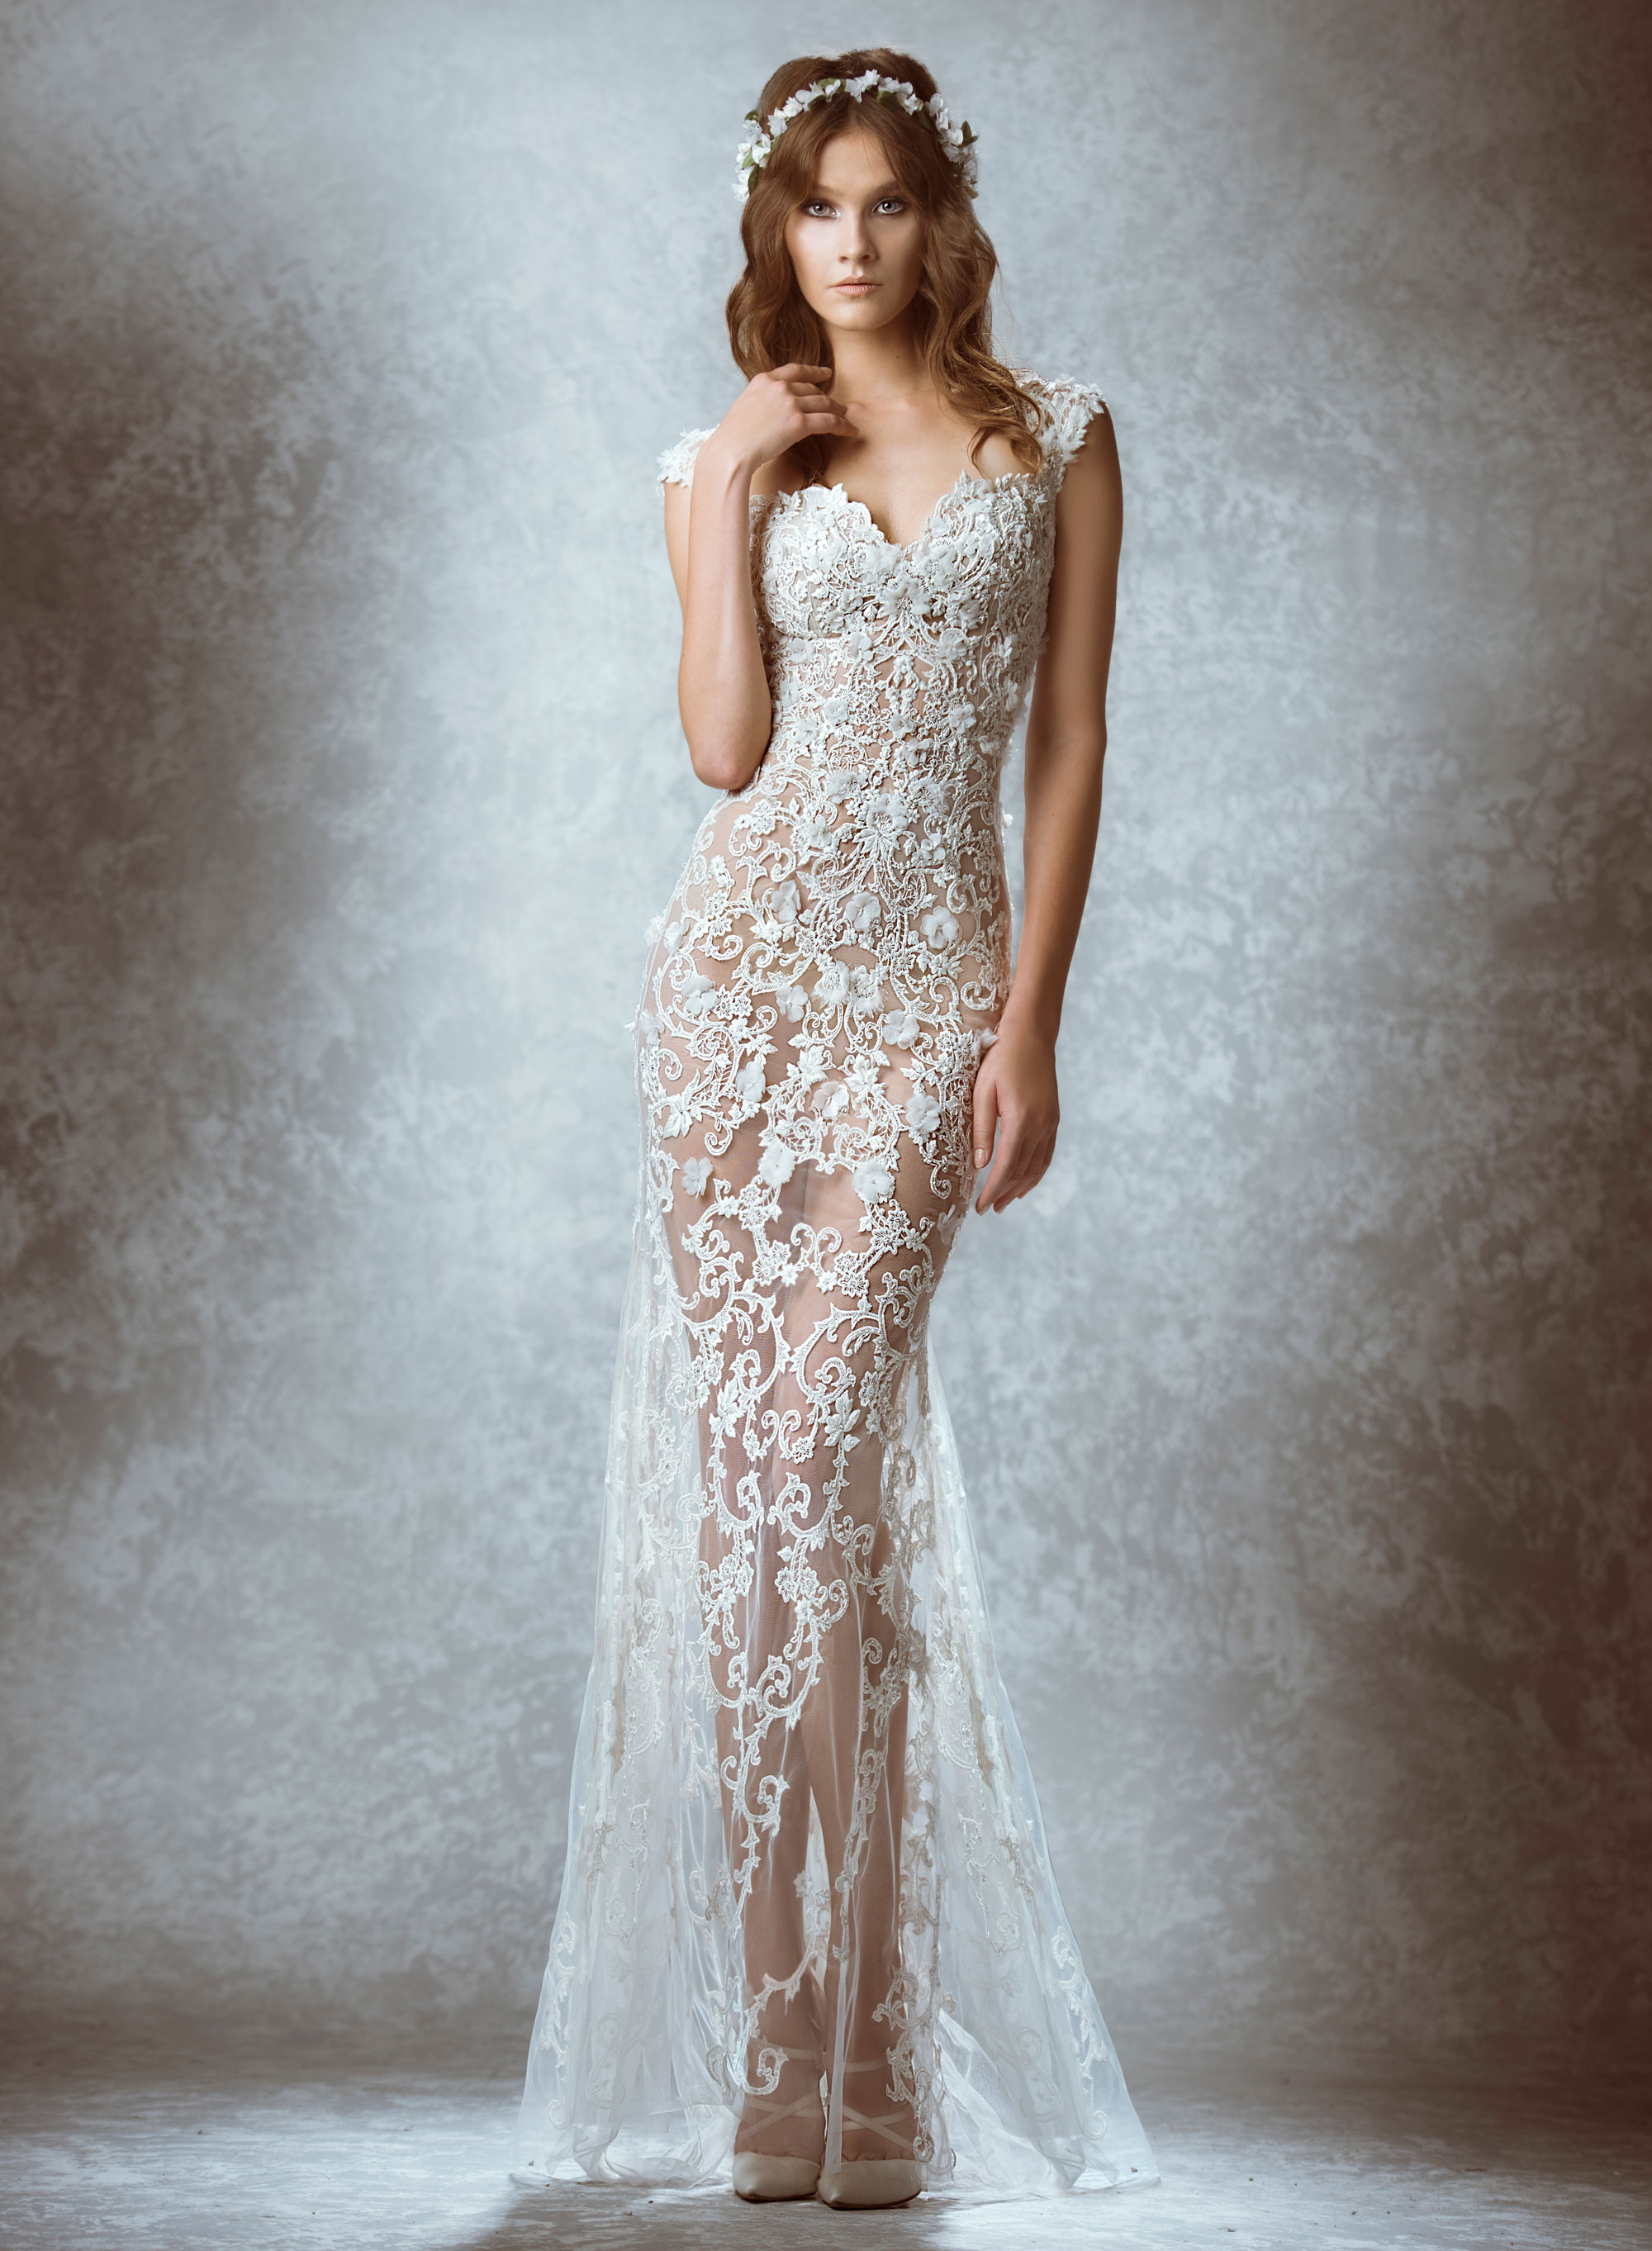 THE MARVELOUS WEDDING COLLECTION BY ZUHAIR MURAD FOR FALL 2015